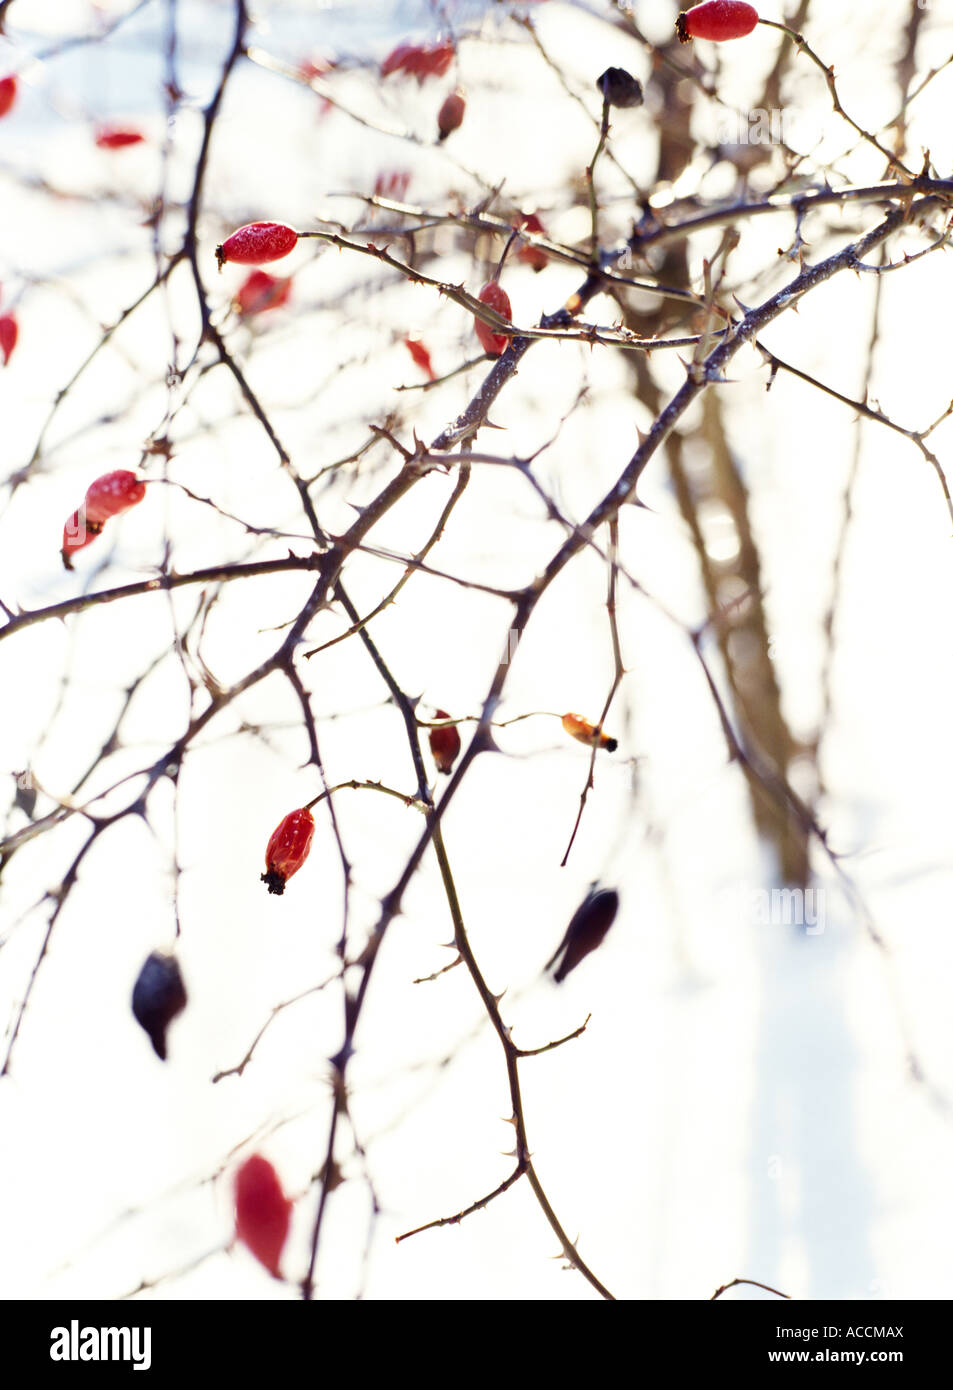 A rose hip bush in winter time. - Stock Image